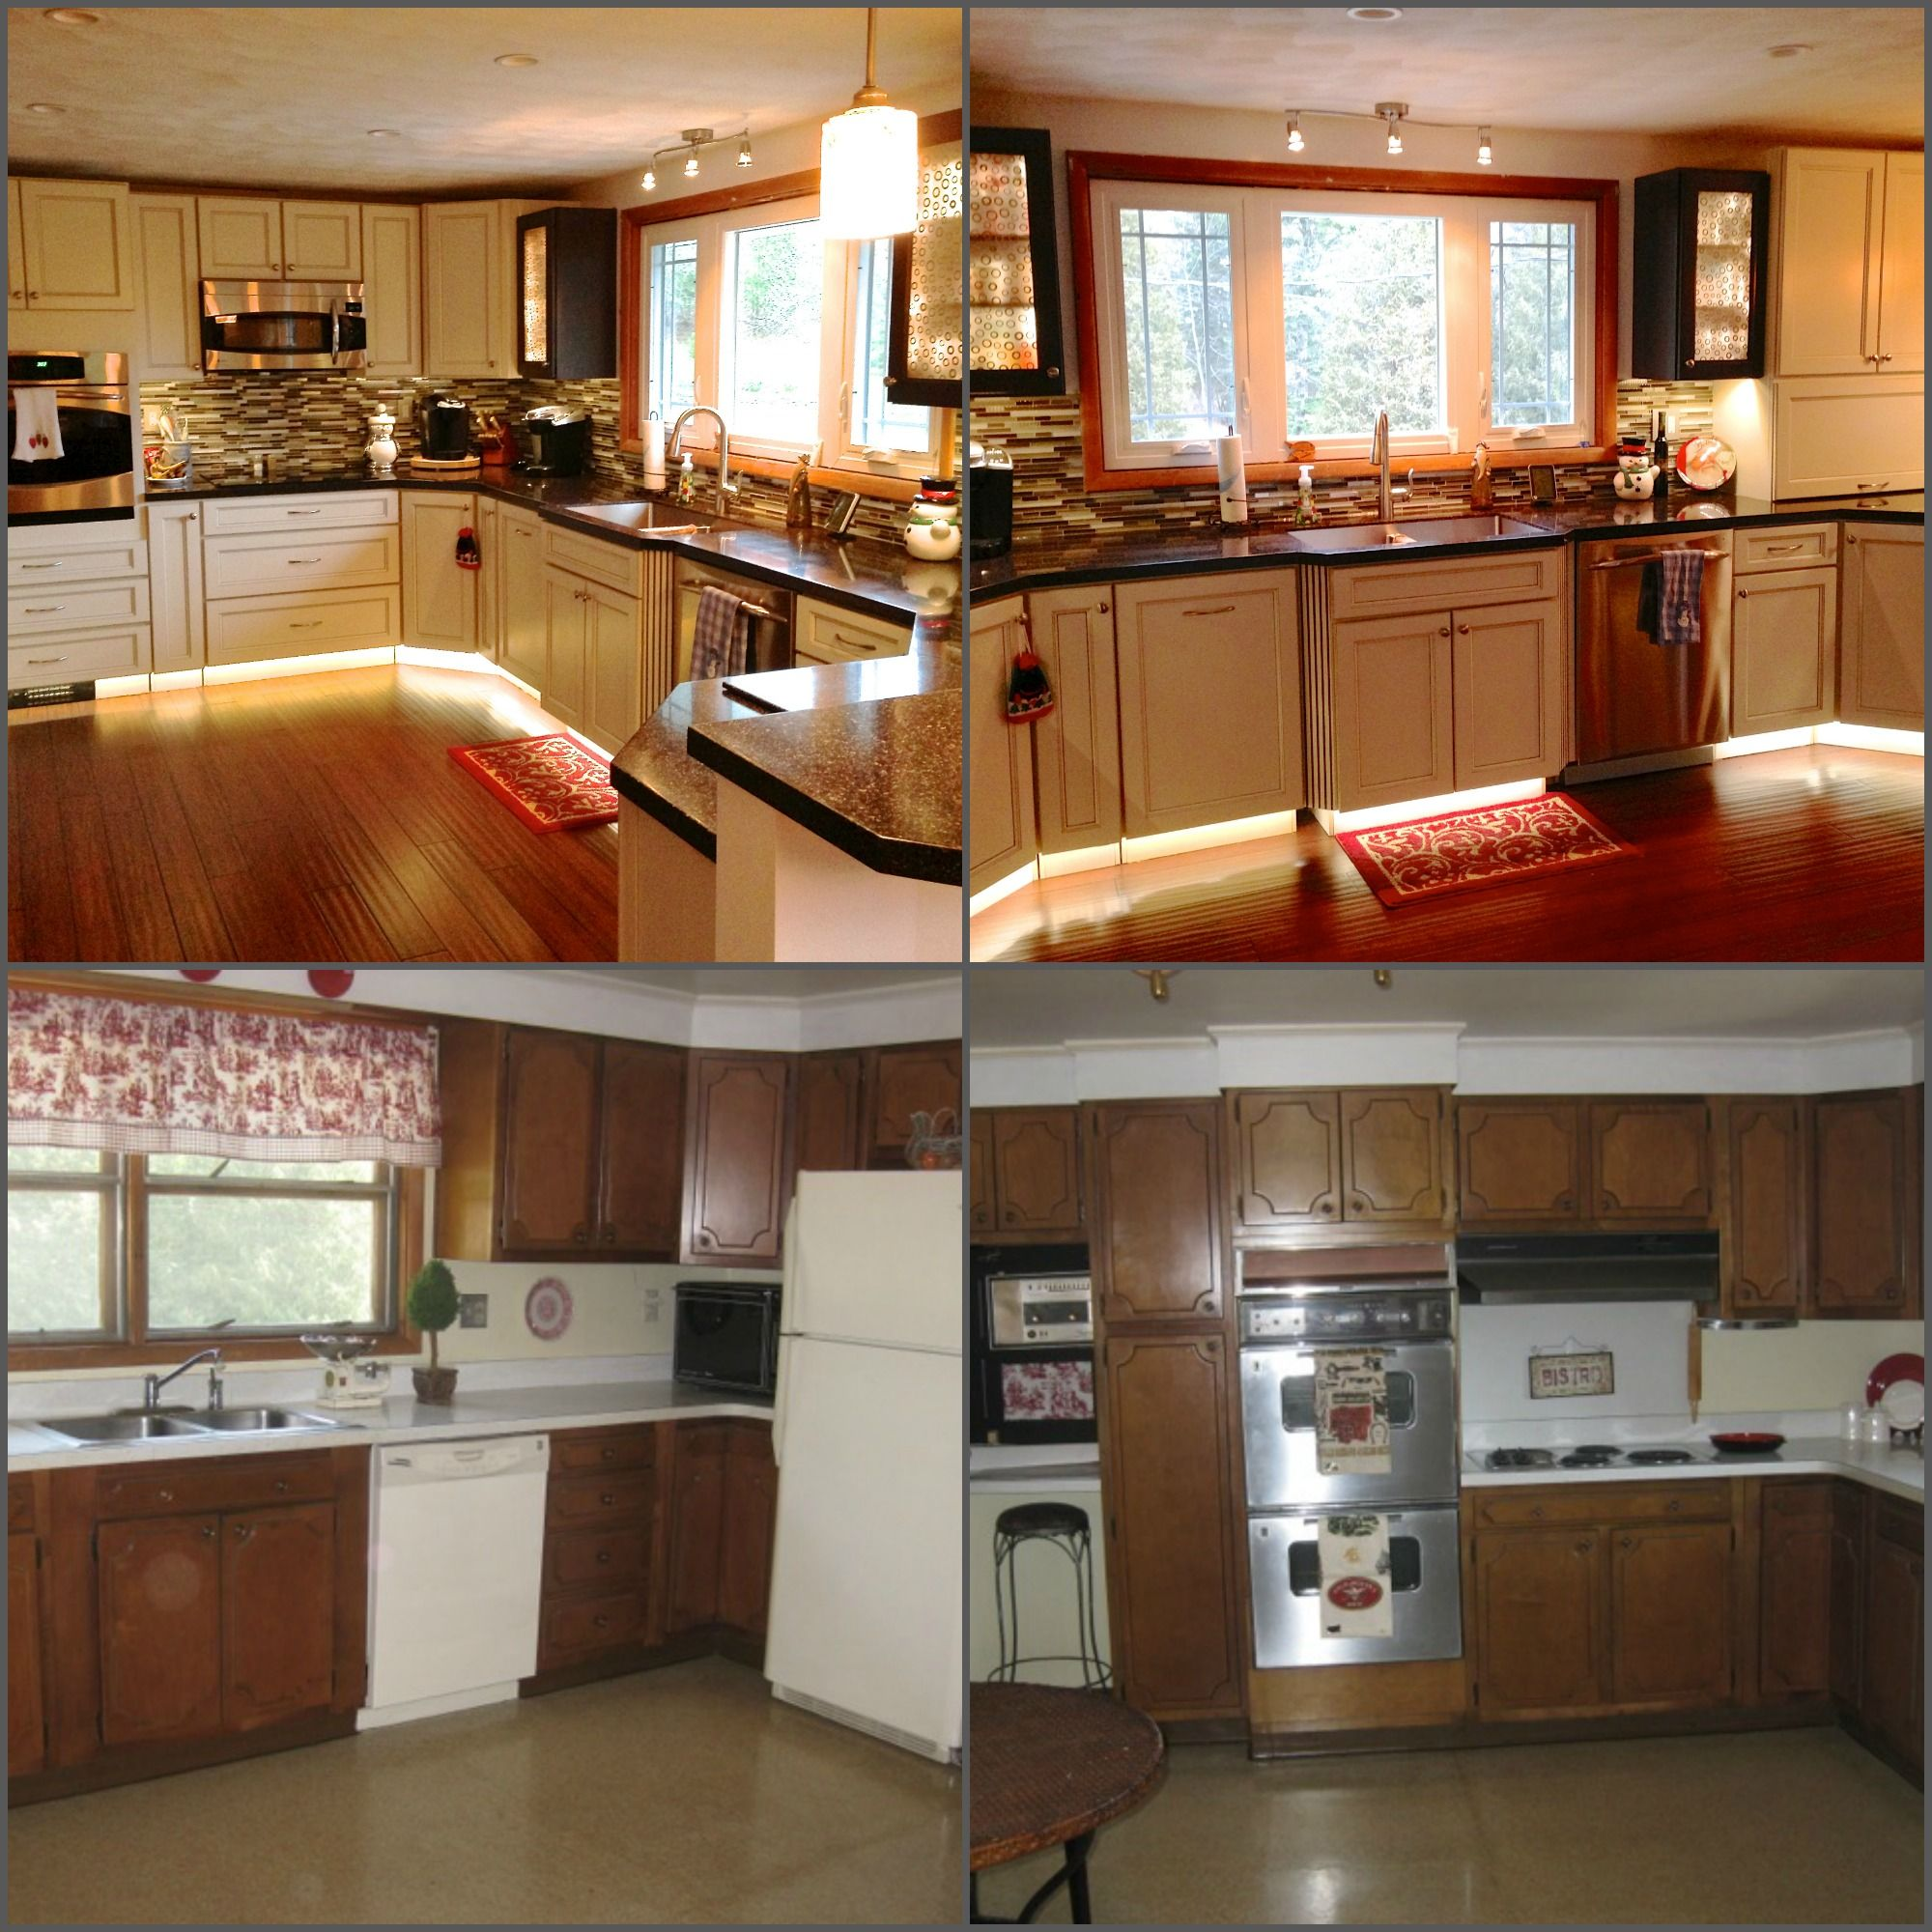 Kitchen remodel mobile home remodeling ideas pinterest Redo my kitchen